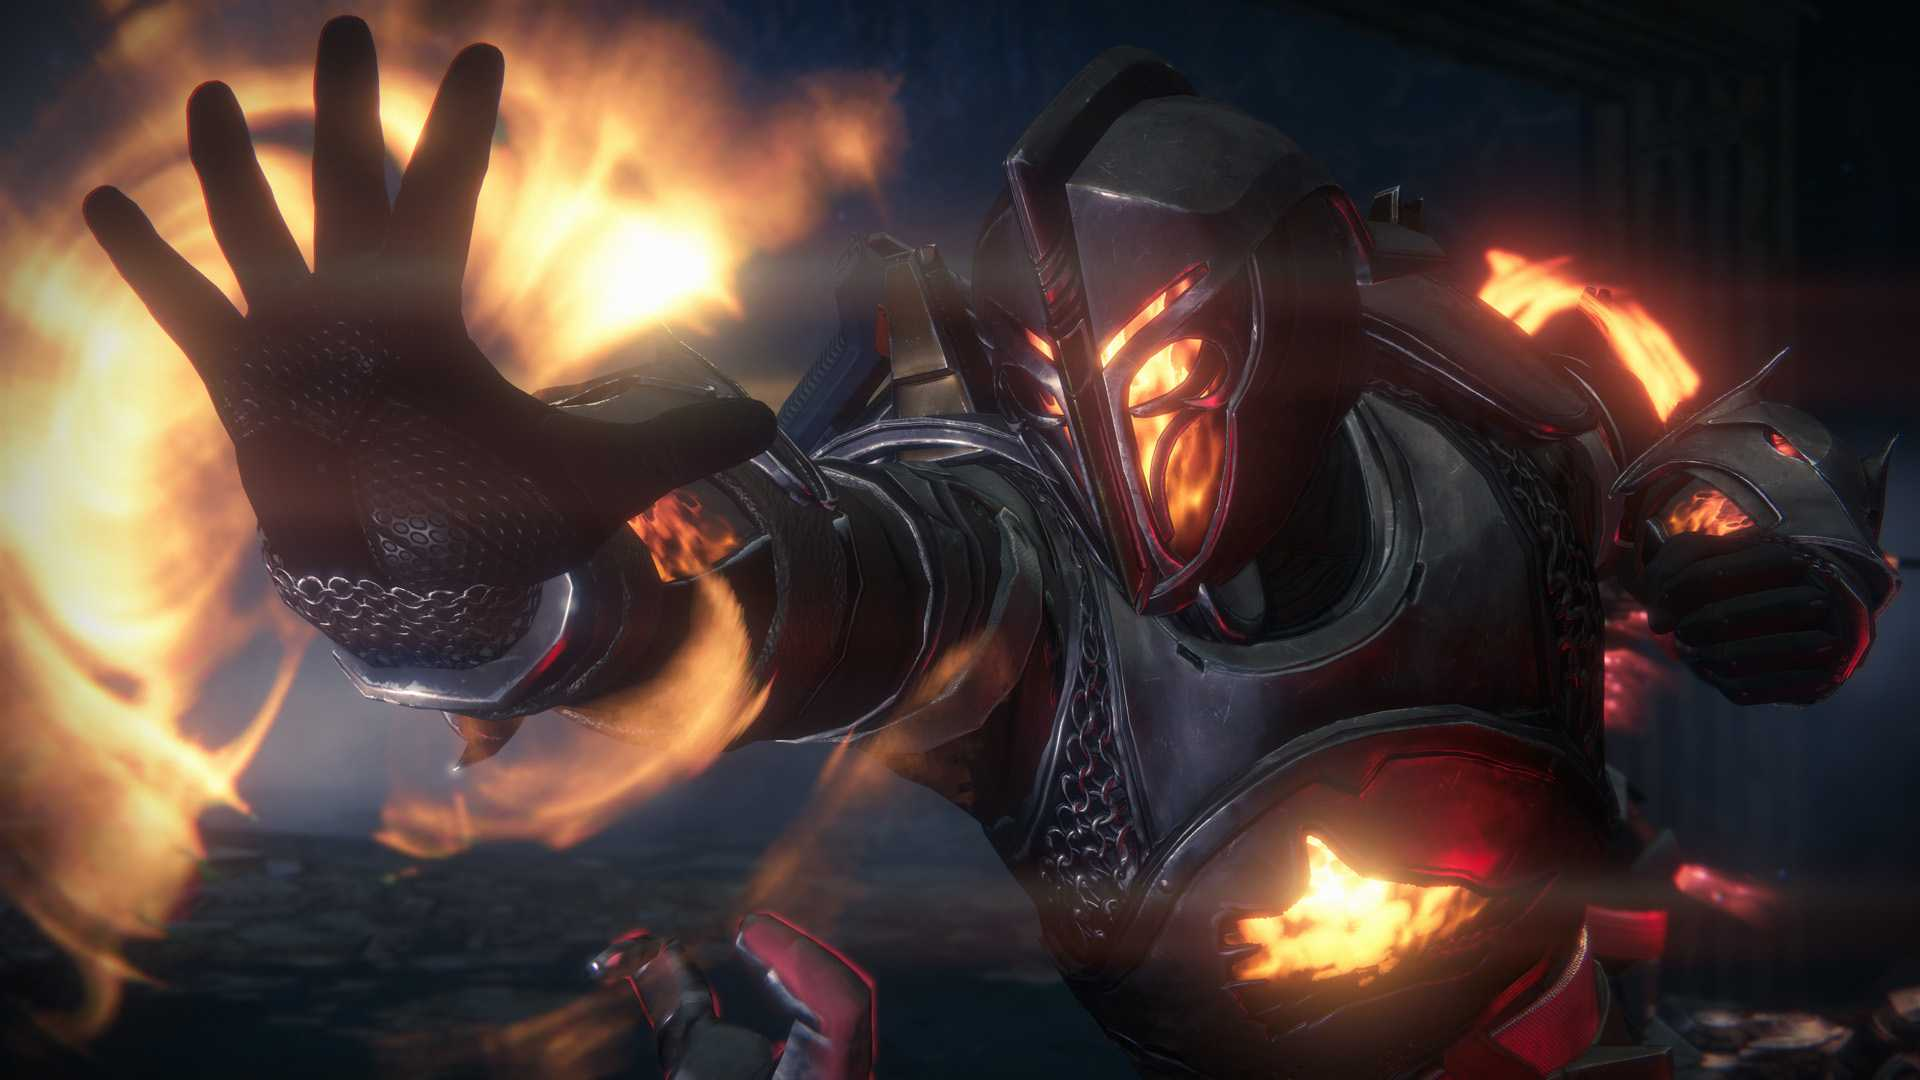 Of the 2 million players logging into Destiny 2 this week, nearly half dropped into Crucible.